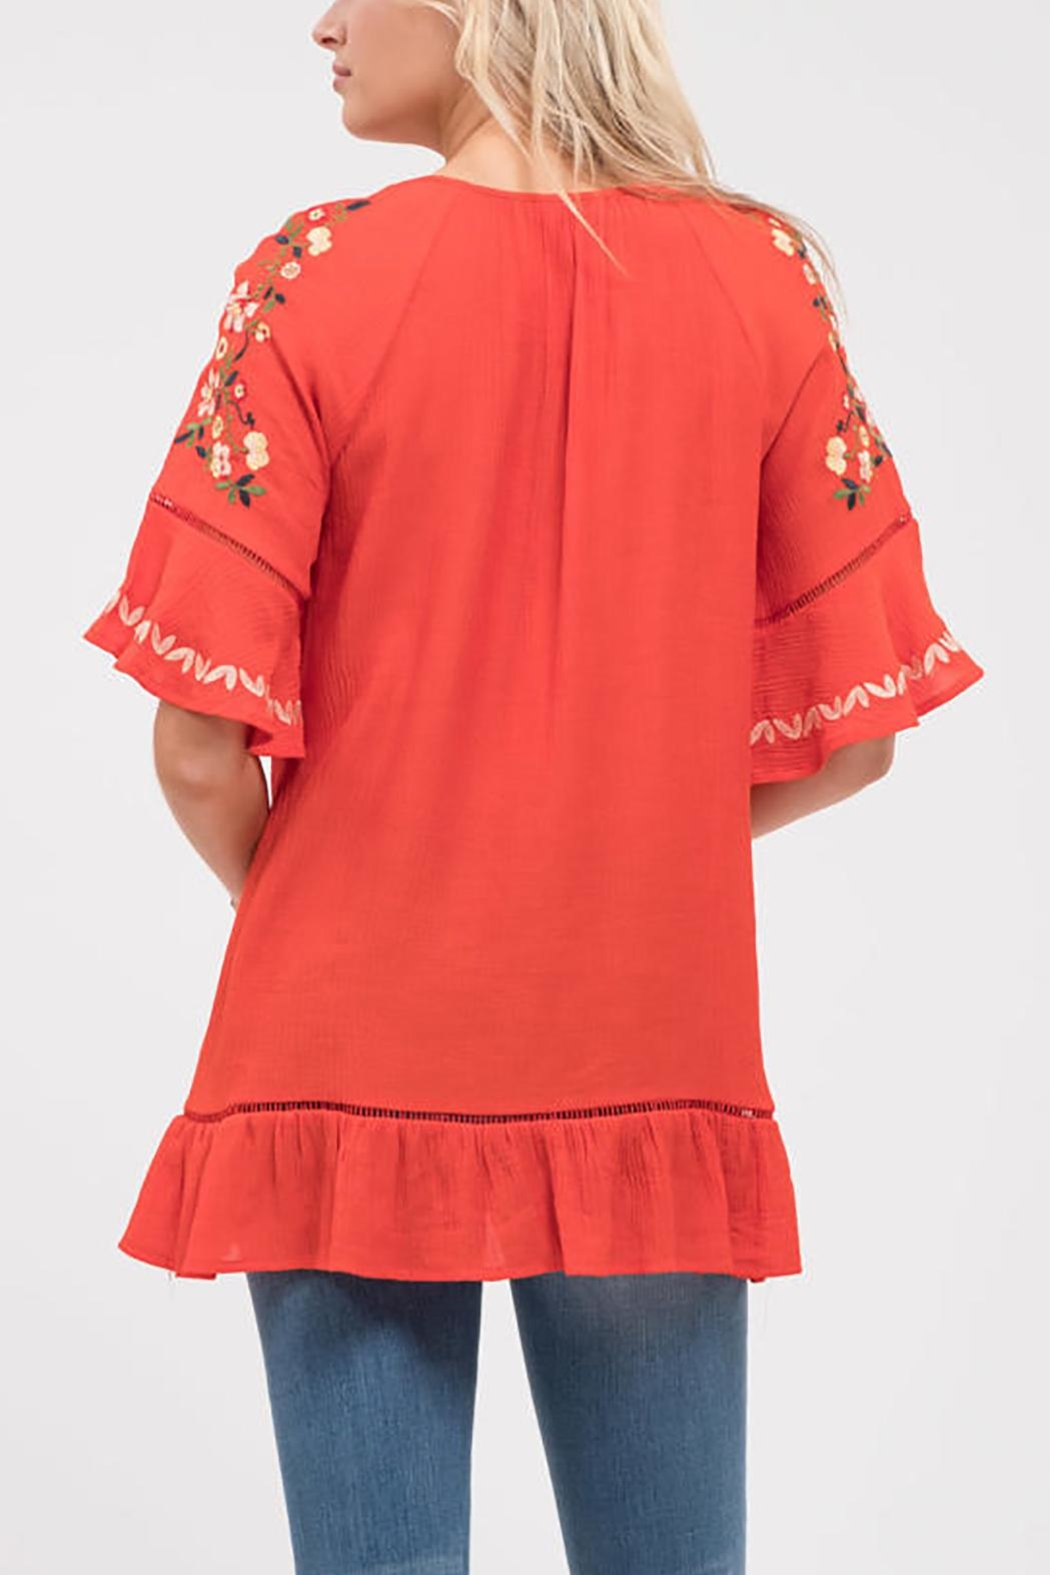 Blu Pepper Stitch Embroidered Shirt - Side Cropped Image